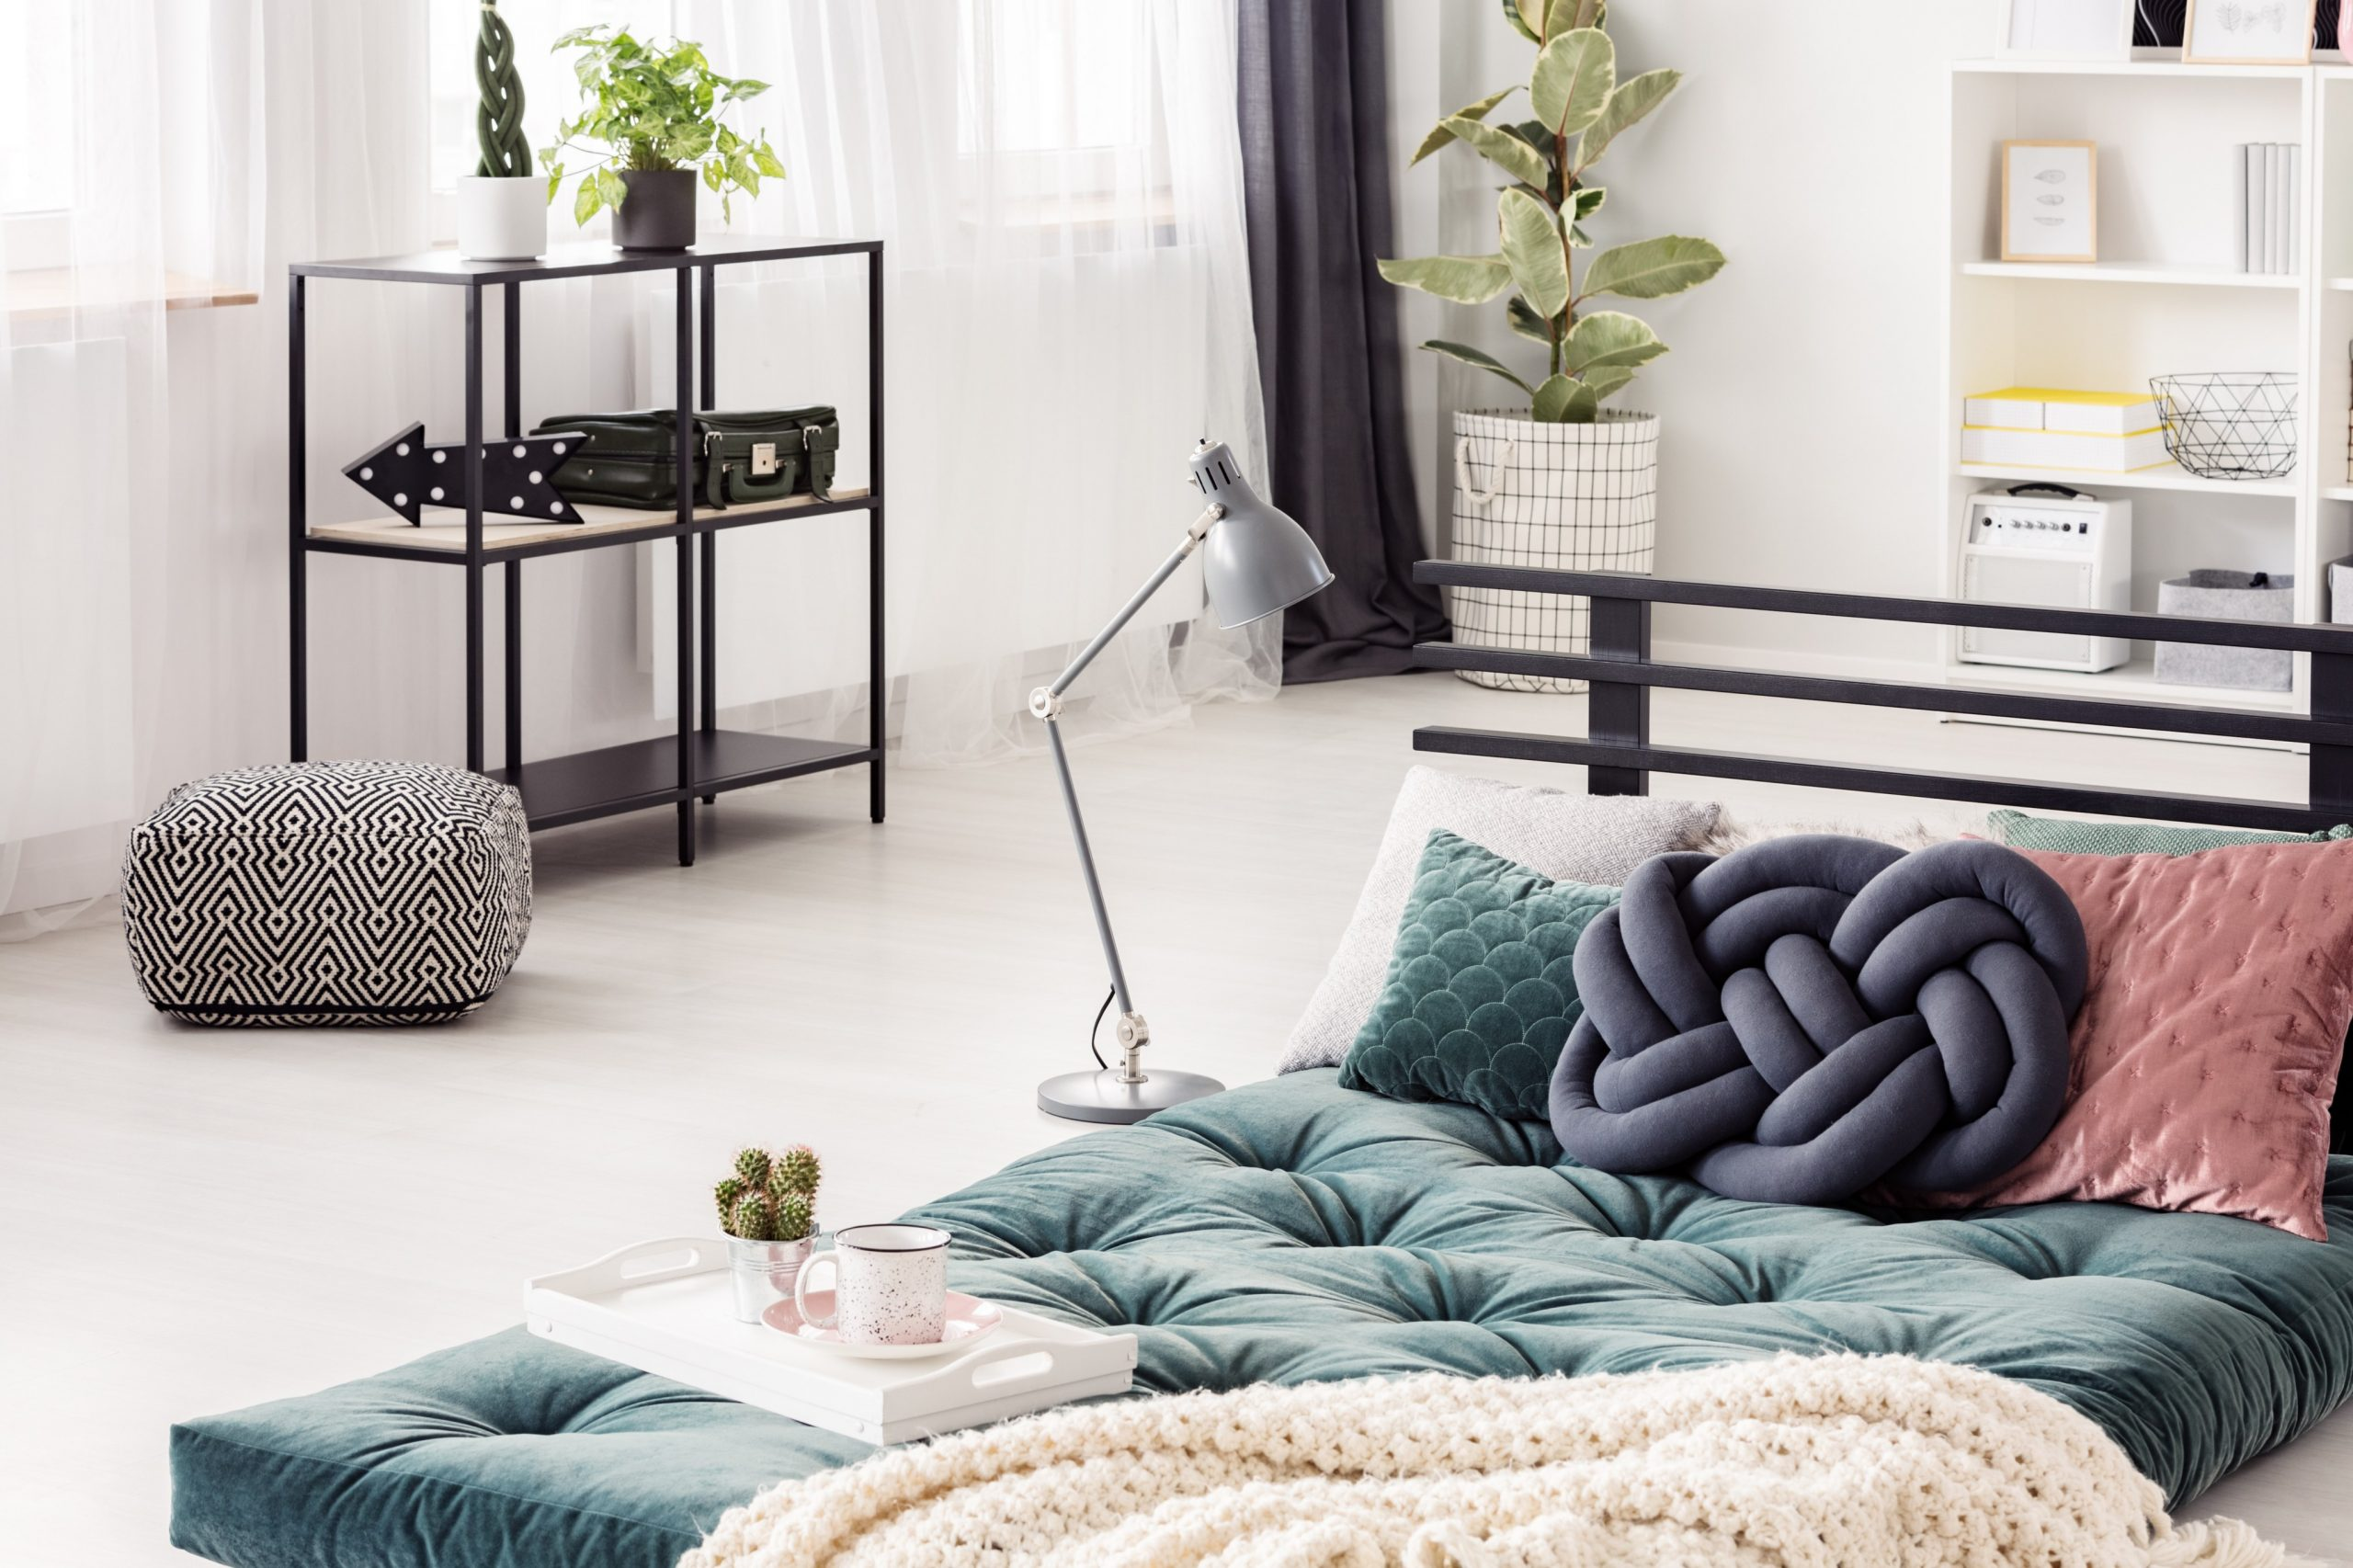 Blue-knot-pillow-on-green-futon-in-bright-bedroom-interior-with-patterned-pouf-and-lamp